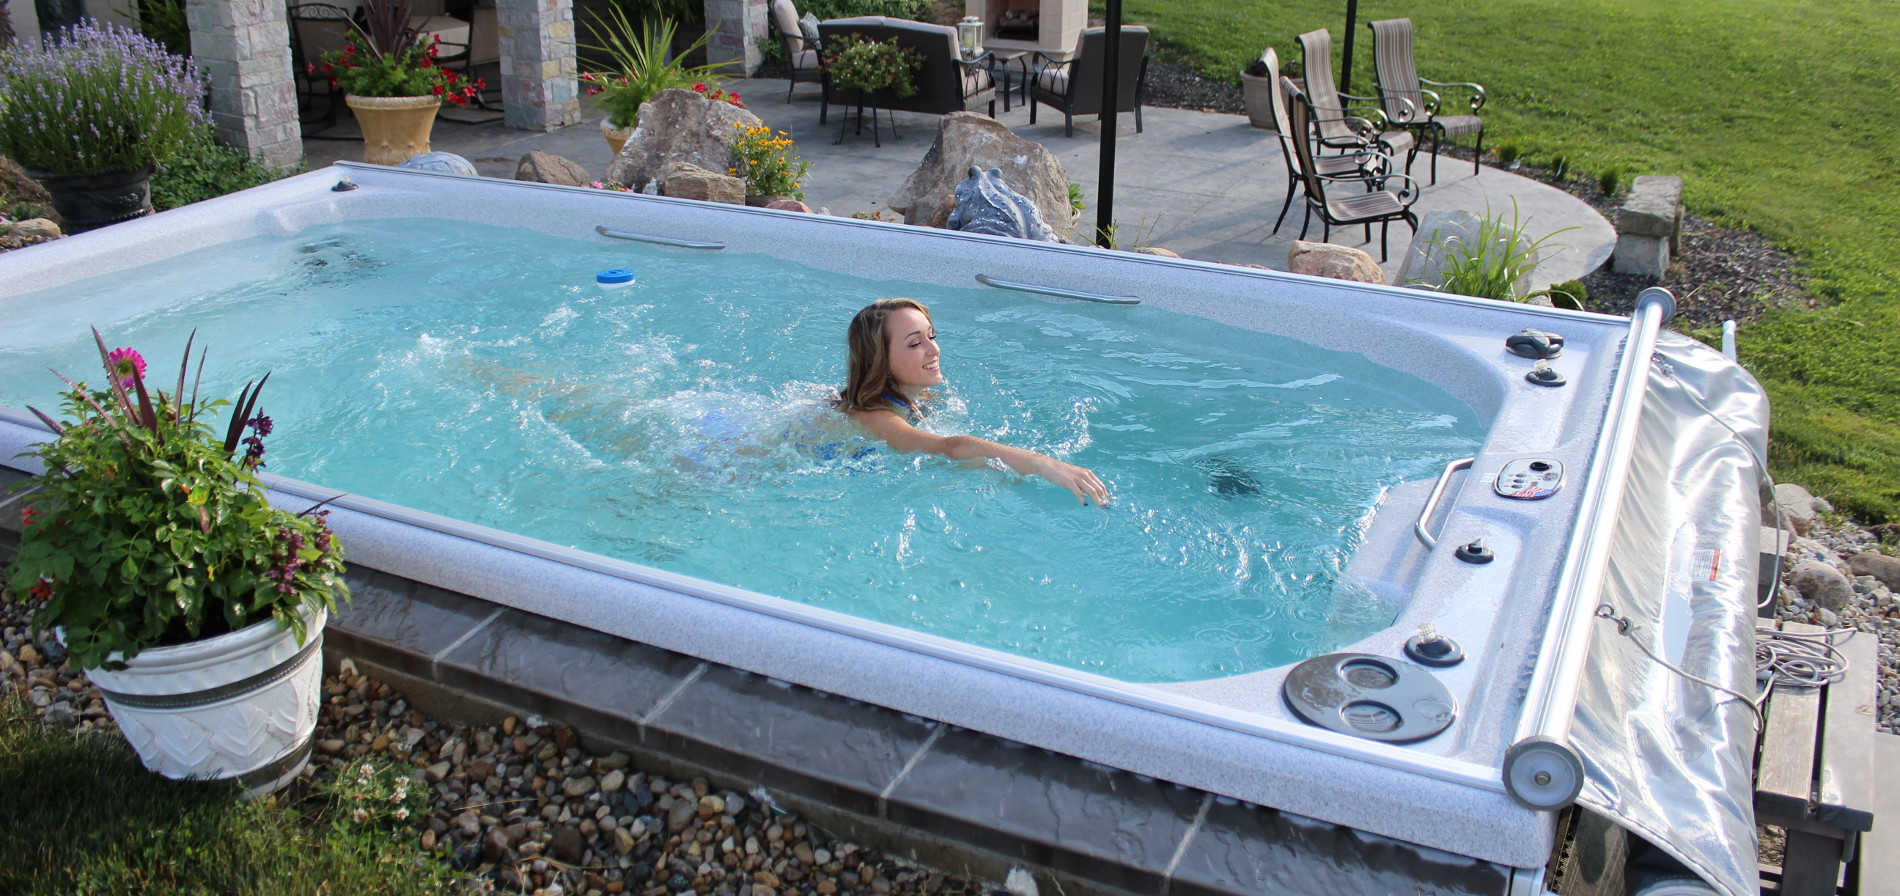 Spa de nage dimension maison design for Piscine de nage hors sol